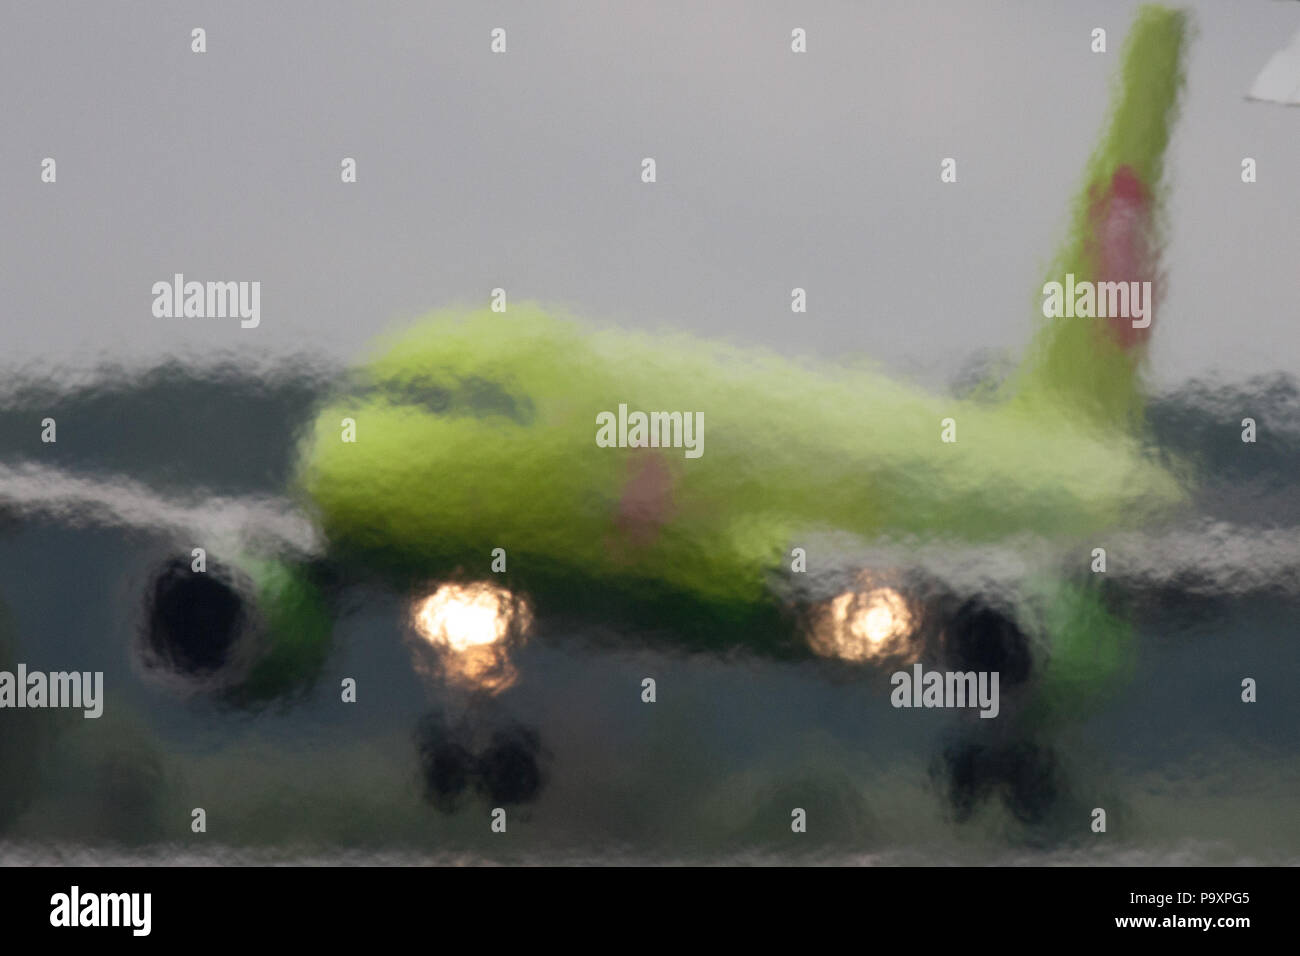 The Airbus A320 of S7 Airlines blurred by the jet exhaust of another airplane lands at Domodedovo airport, Moscow Region, Russia - Stock Image